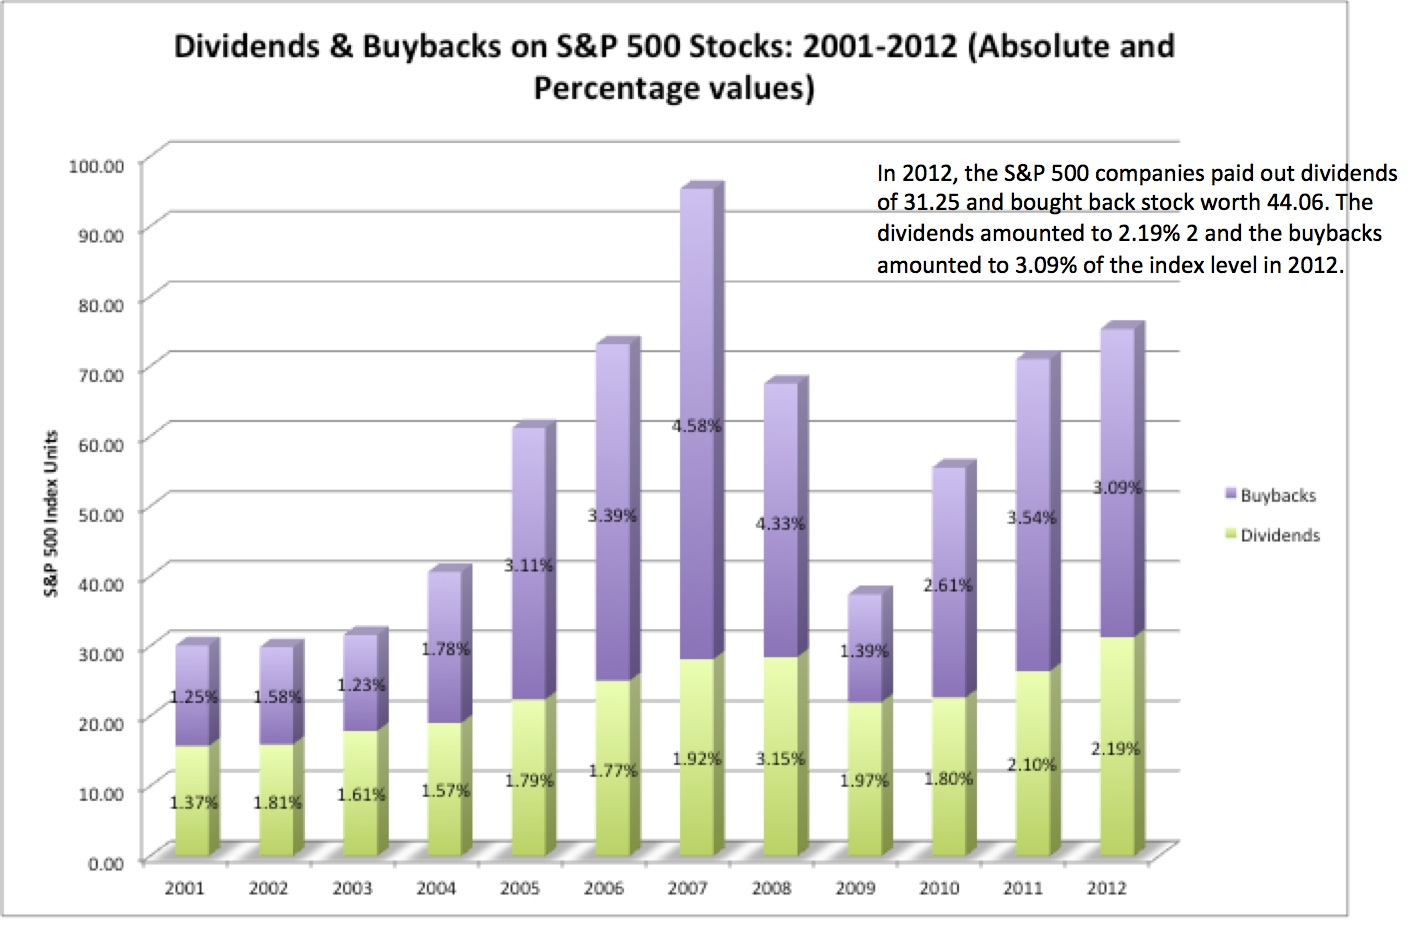 S&P500 Dividend & Buyback 2001-2012